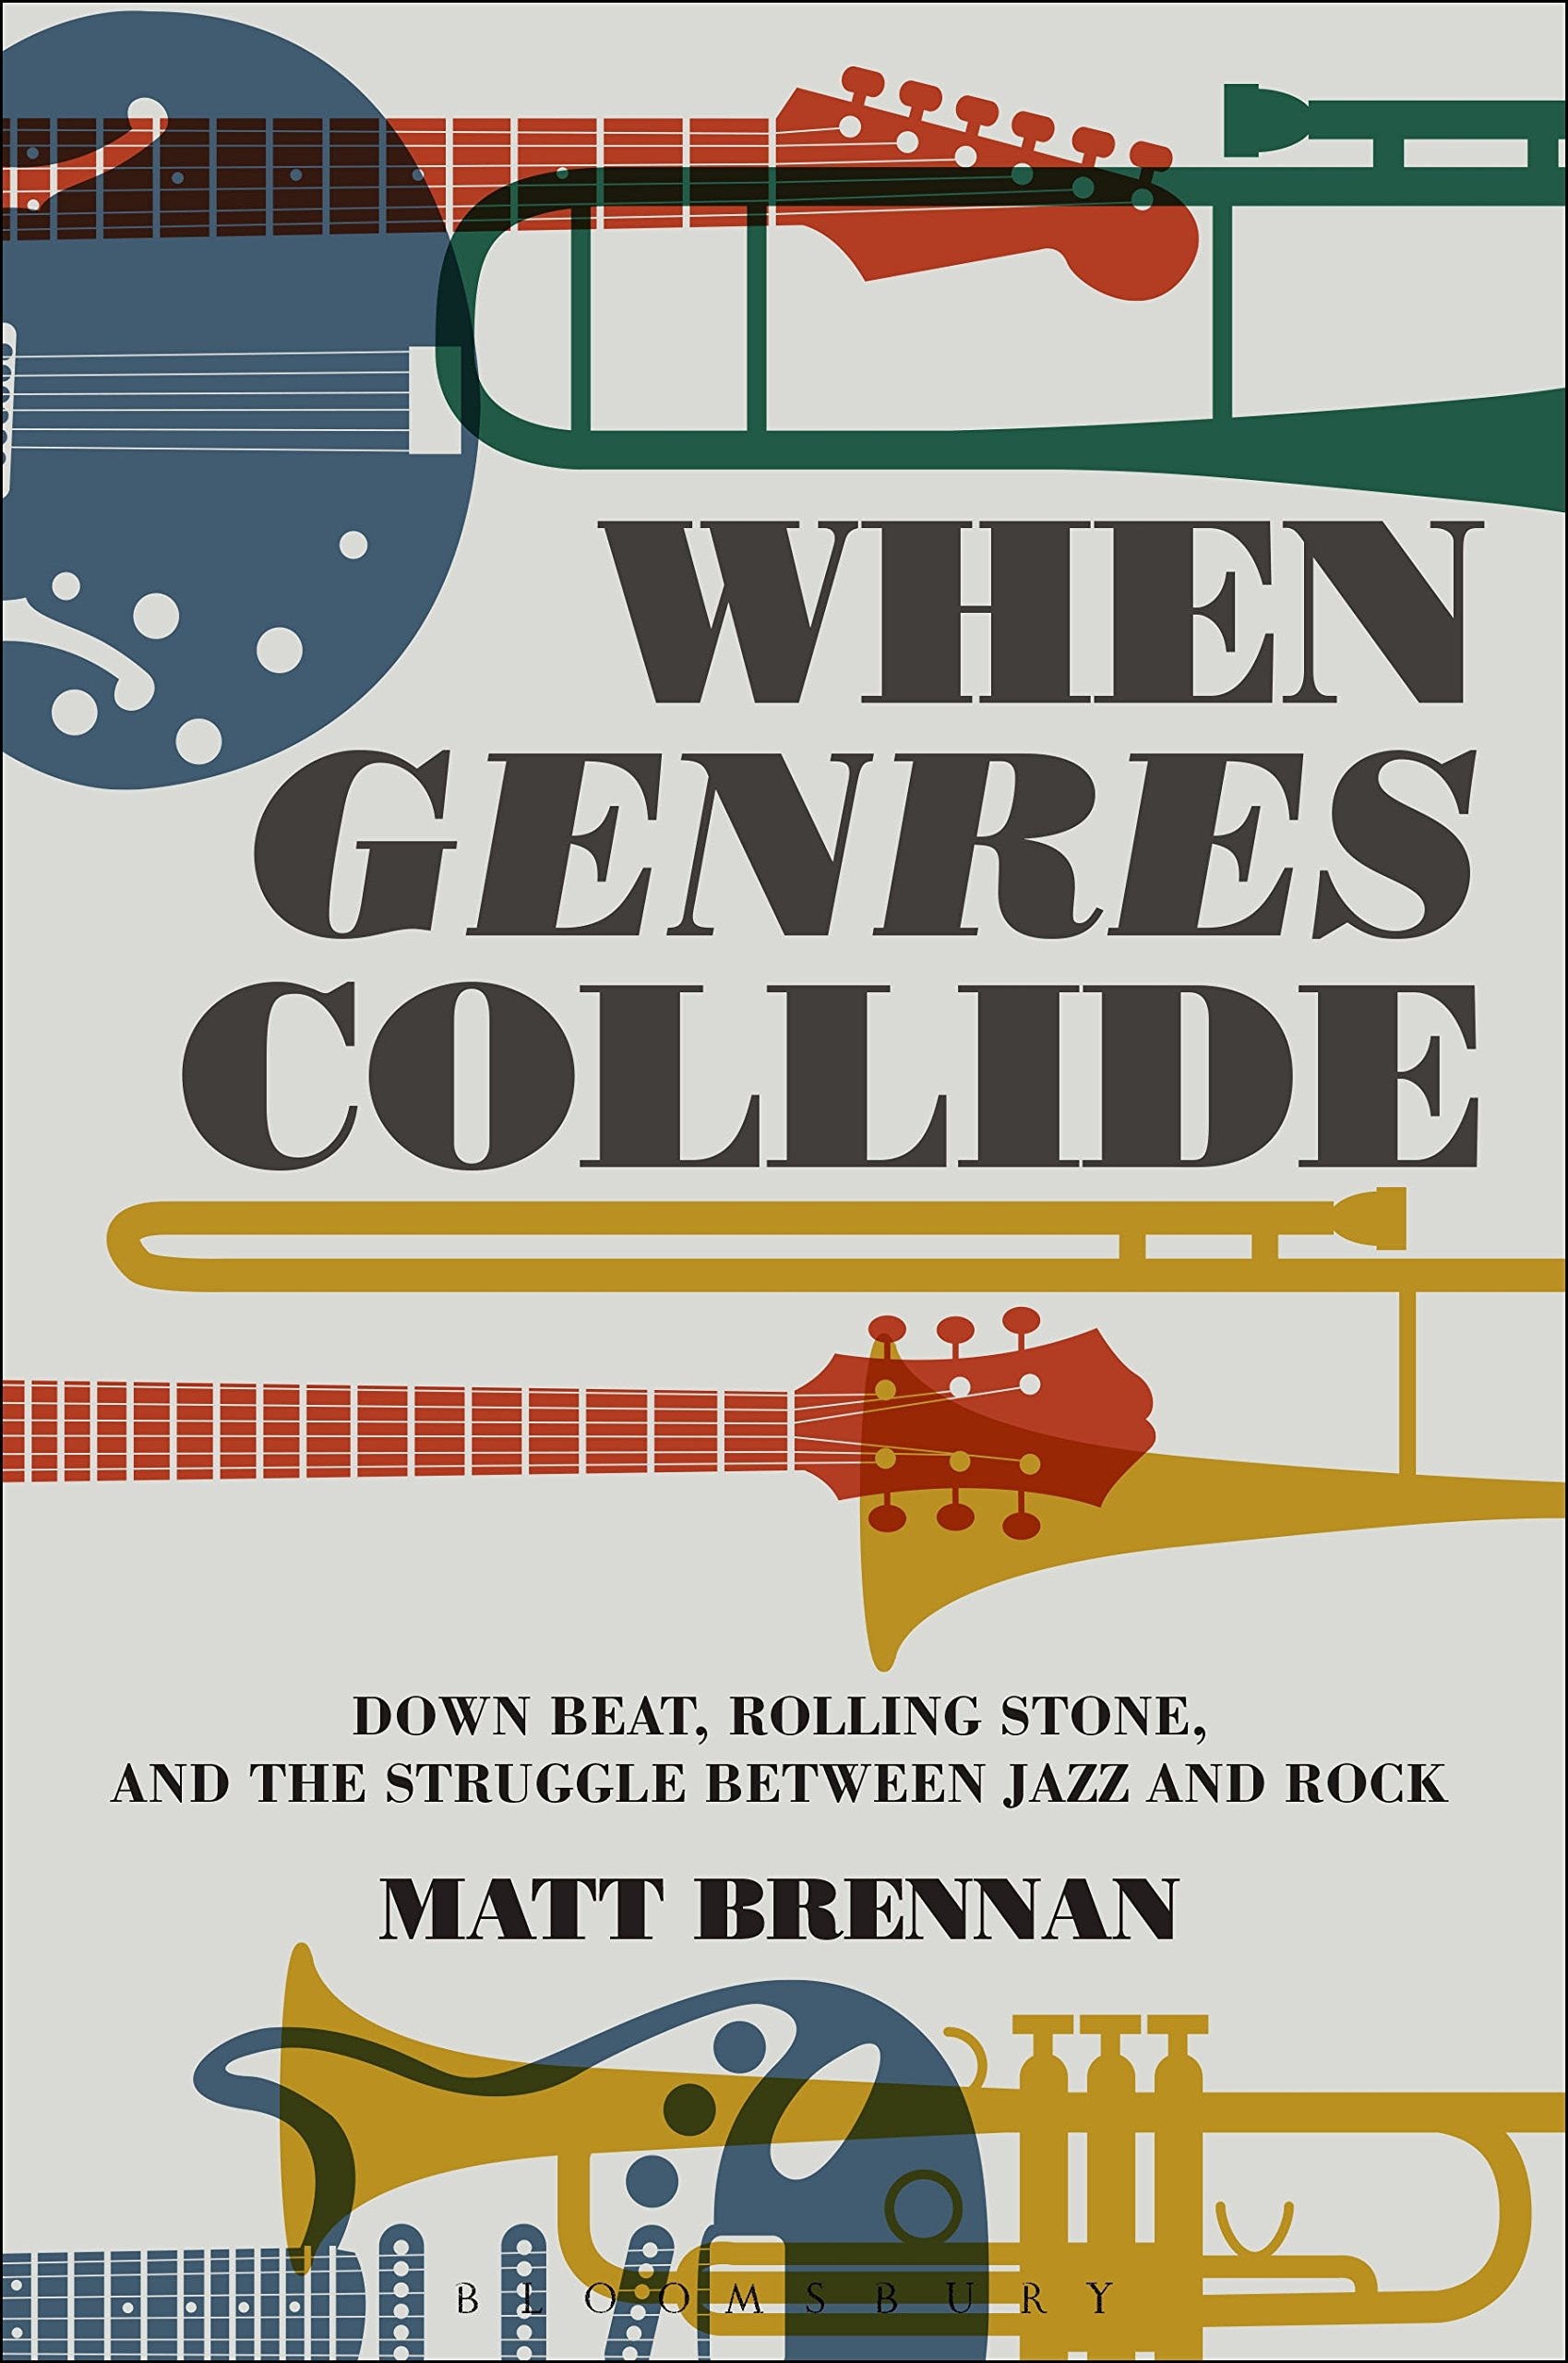 When genres collide down beat rolling stone and the struggle when genres collide down beat rolling stone and the struggle between jazz and rock alternate takes critical responses to popular music matt brennan fandeluxe Image collections